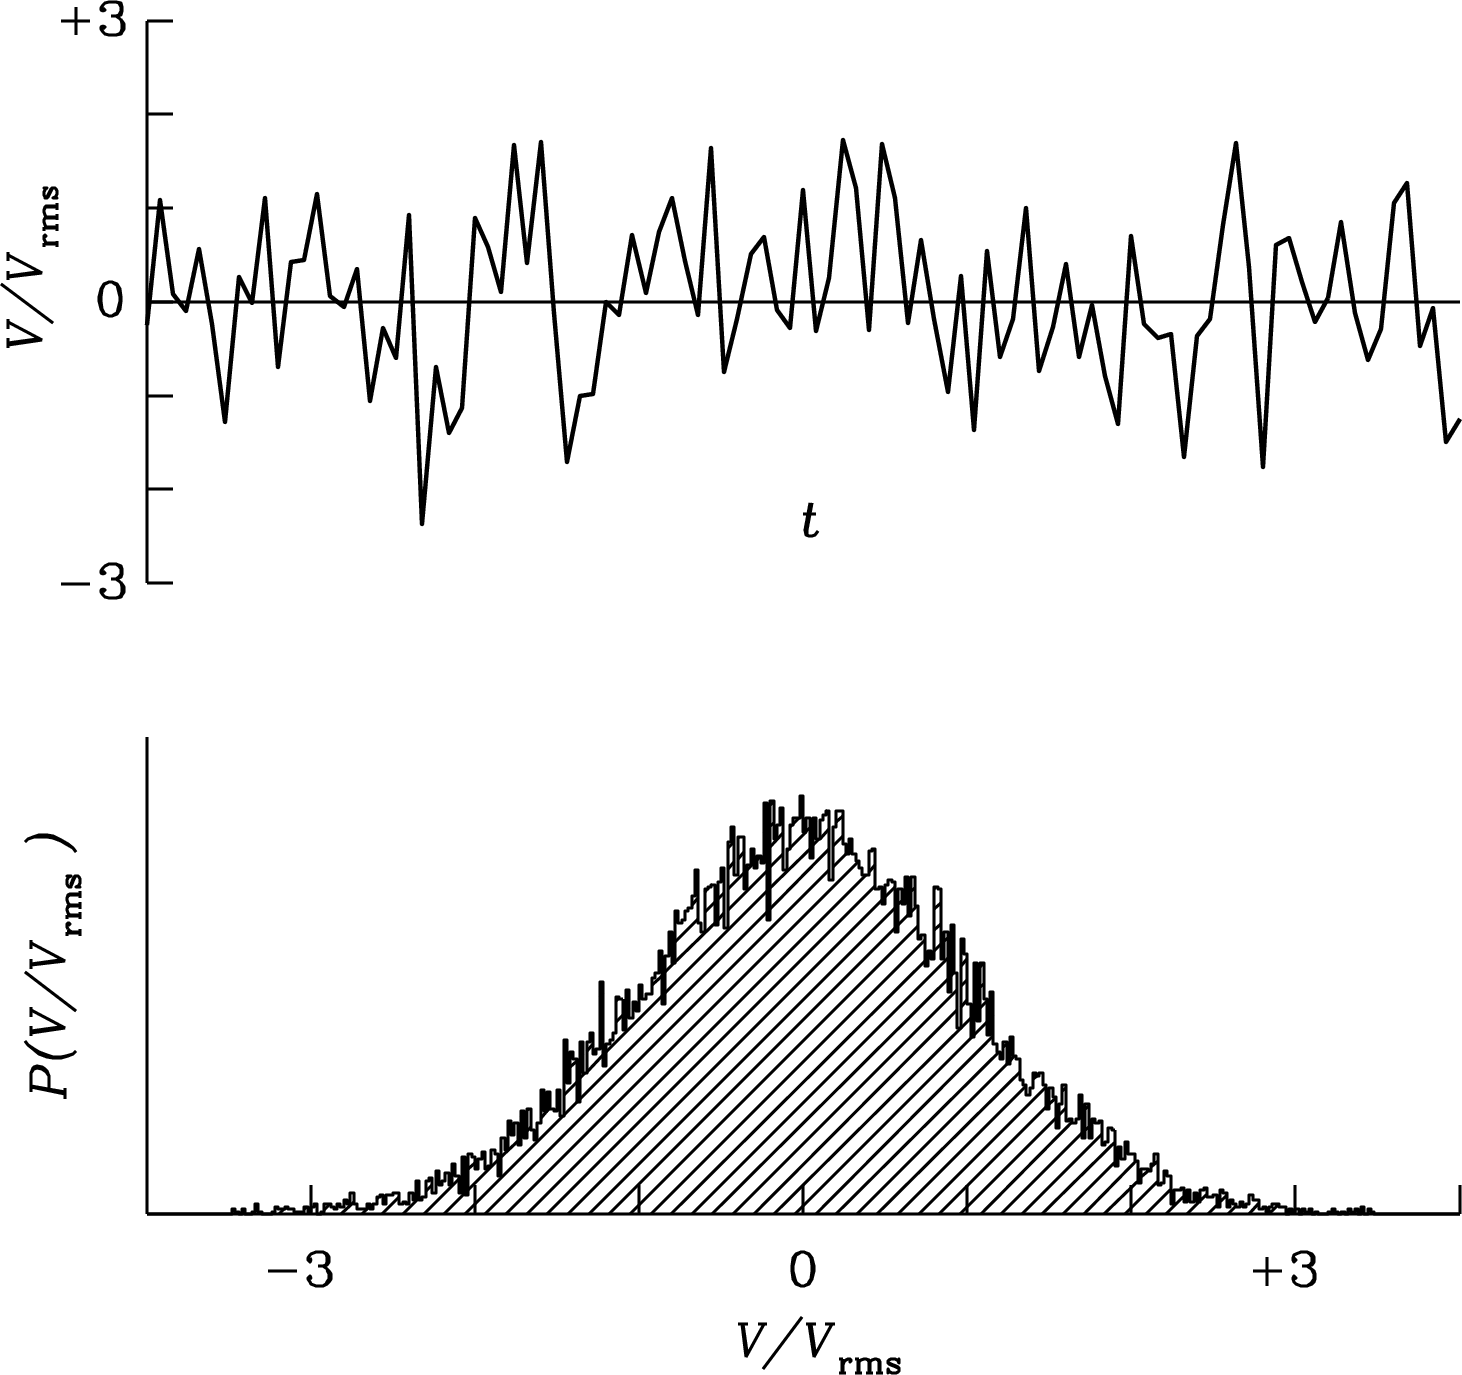 hight resolution of figure 3 29 the output voltage v of a radio telescope varies rapidly on short timescales as indicated by the upper plot showing 100 independent samples of